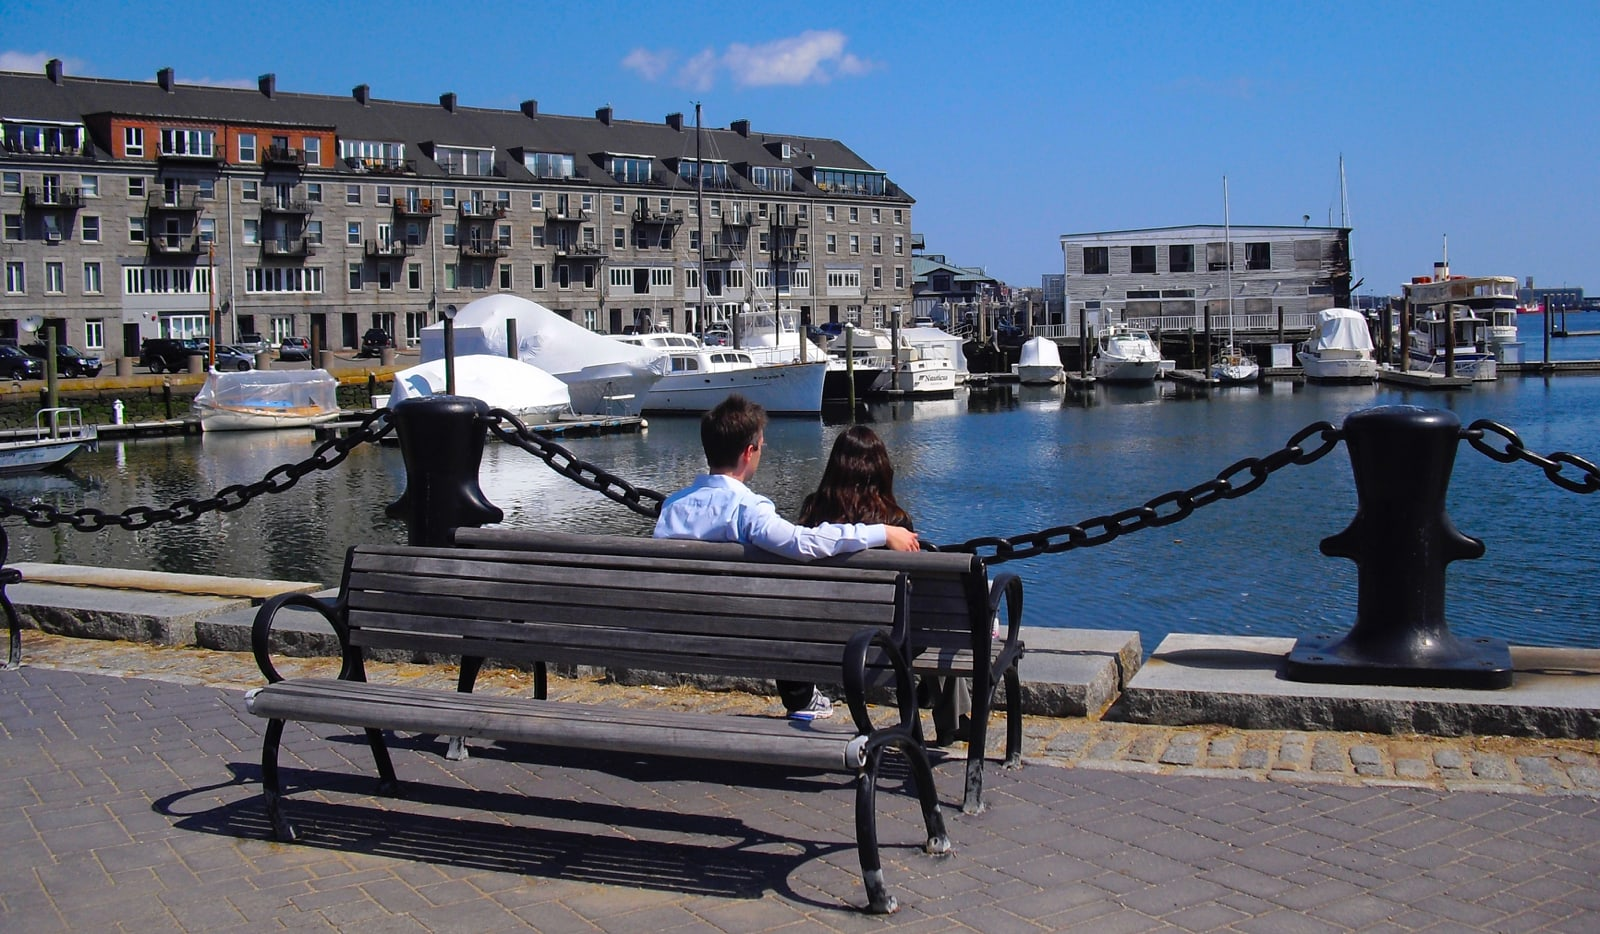 Couple on Bench on Boston MA Waterfront